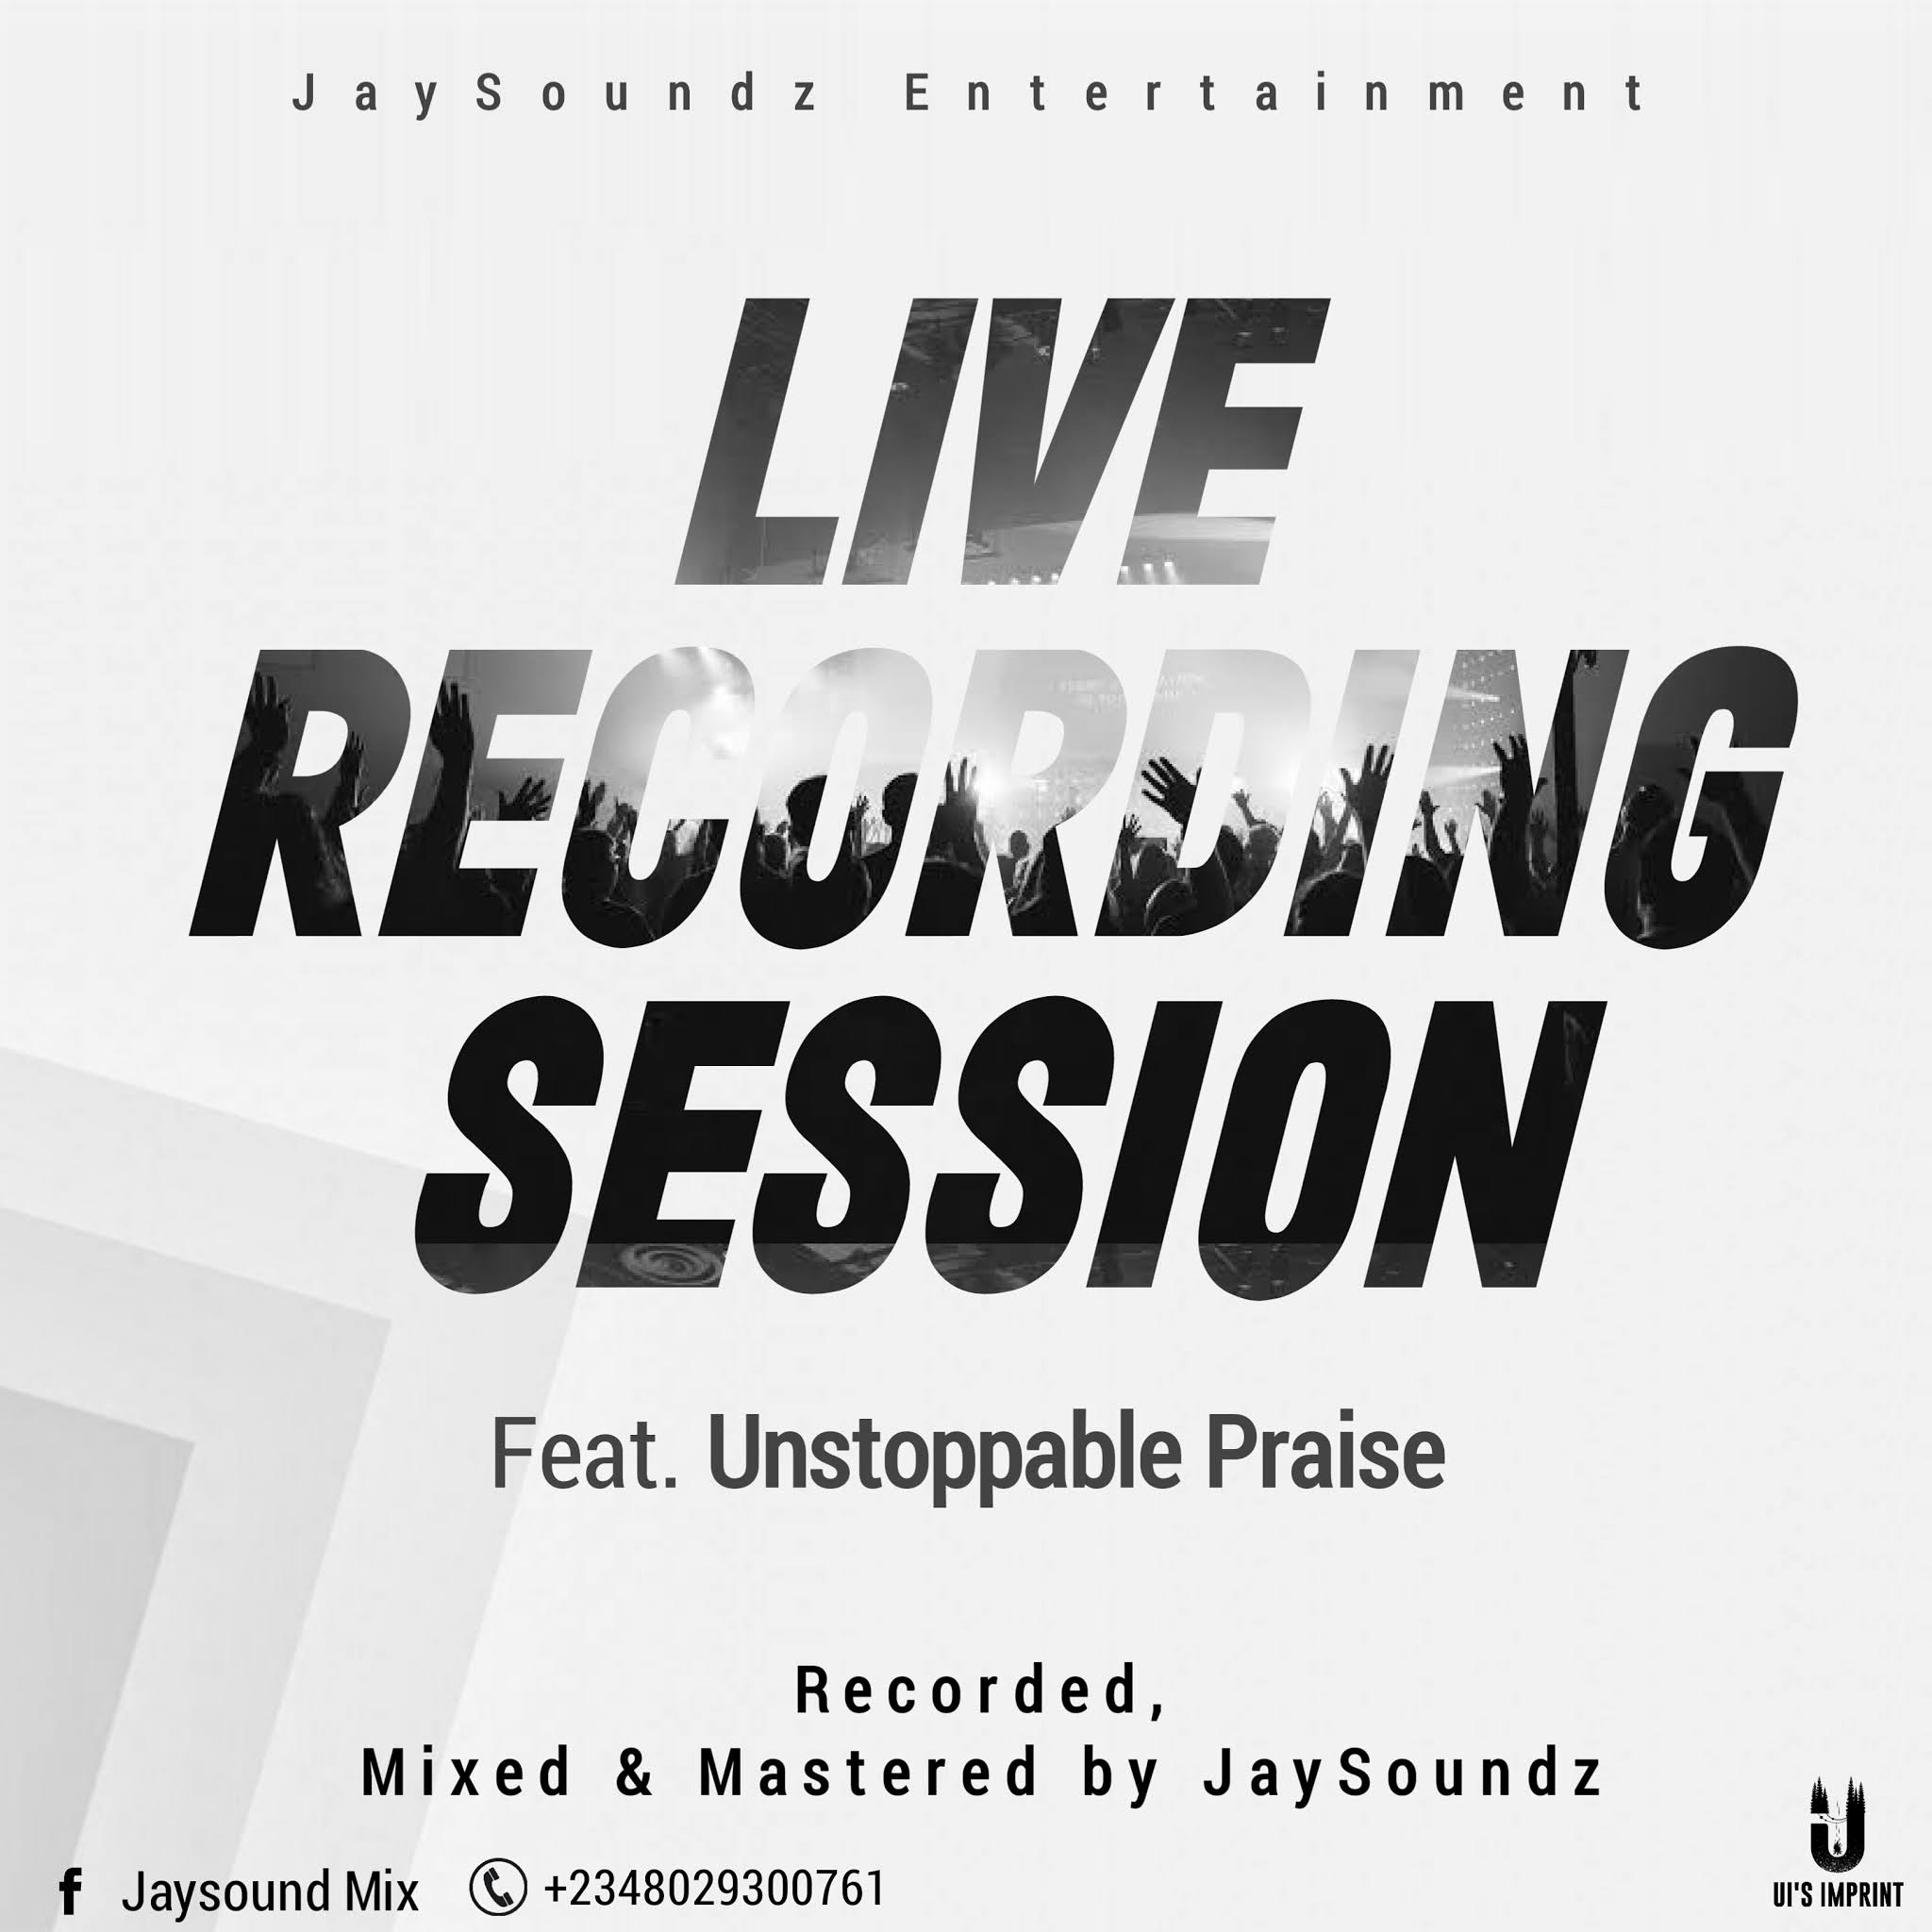 LIVE AUDIO: JaySoundz Studio - Live Recording Session Ft. Unstoppable Praise